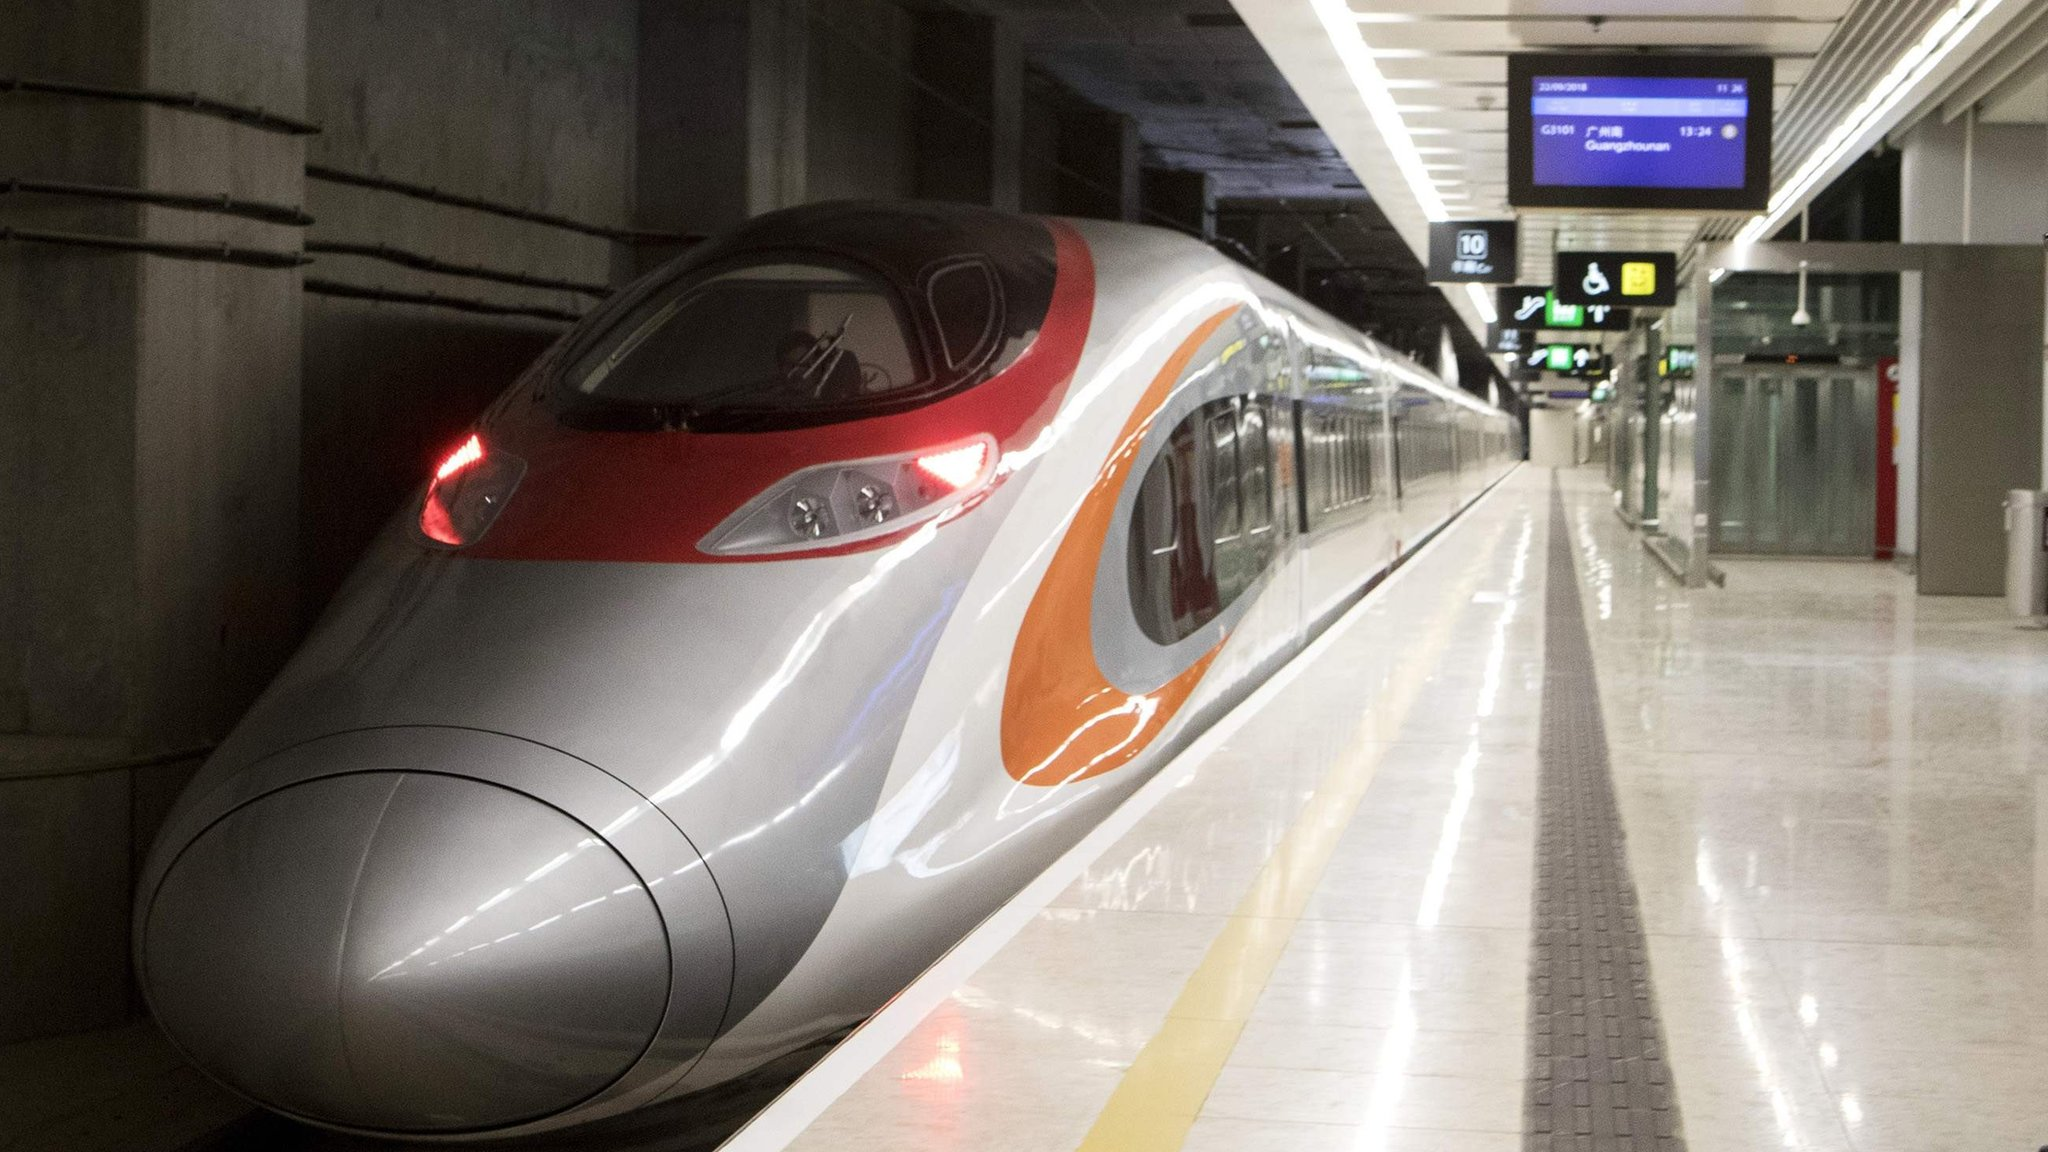 Hong Kong express rail link launches amid controversy